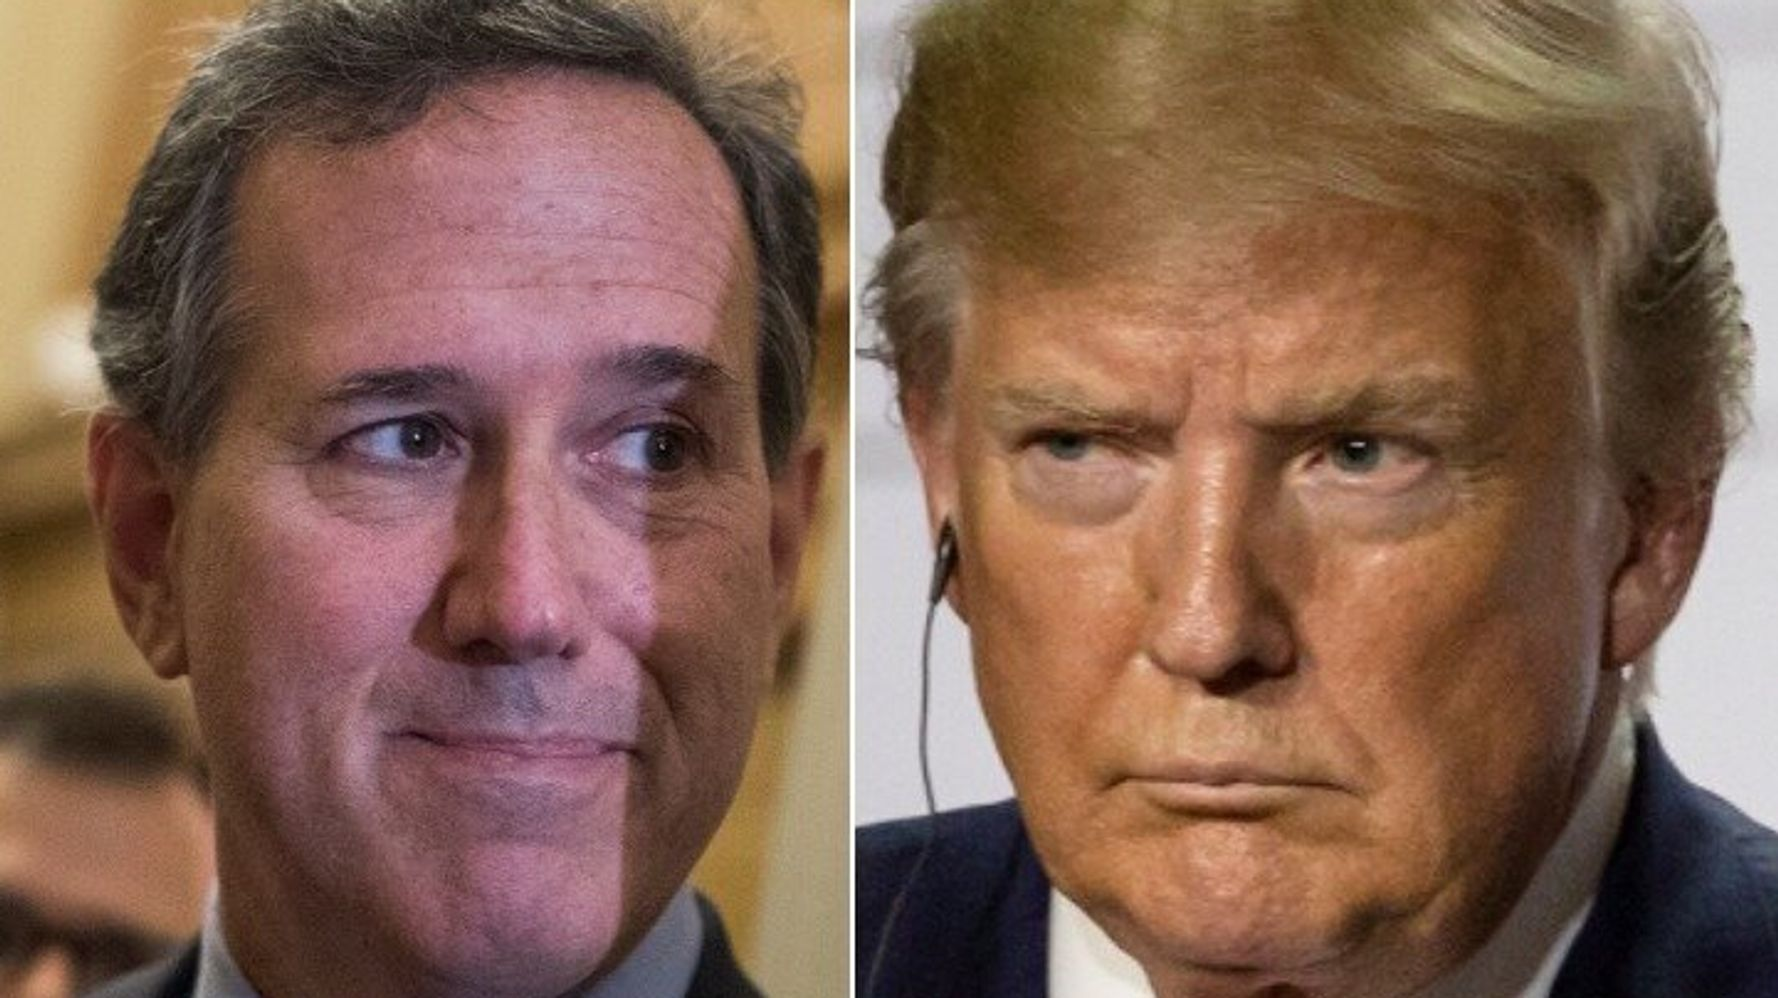 Westlake Legal Group 5d64d9c43c0000510045cd5e 'This Is Really Bad': Rick Santorum Has An Ominous 2020 Warning For Trump